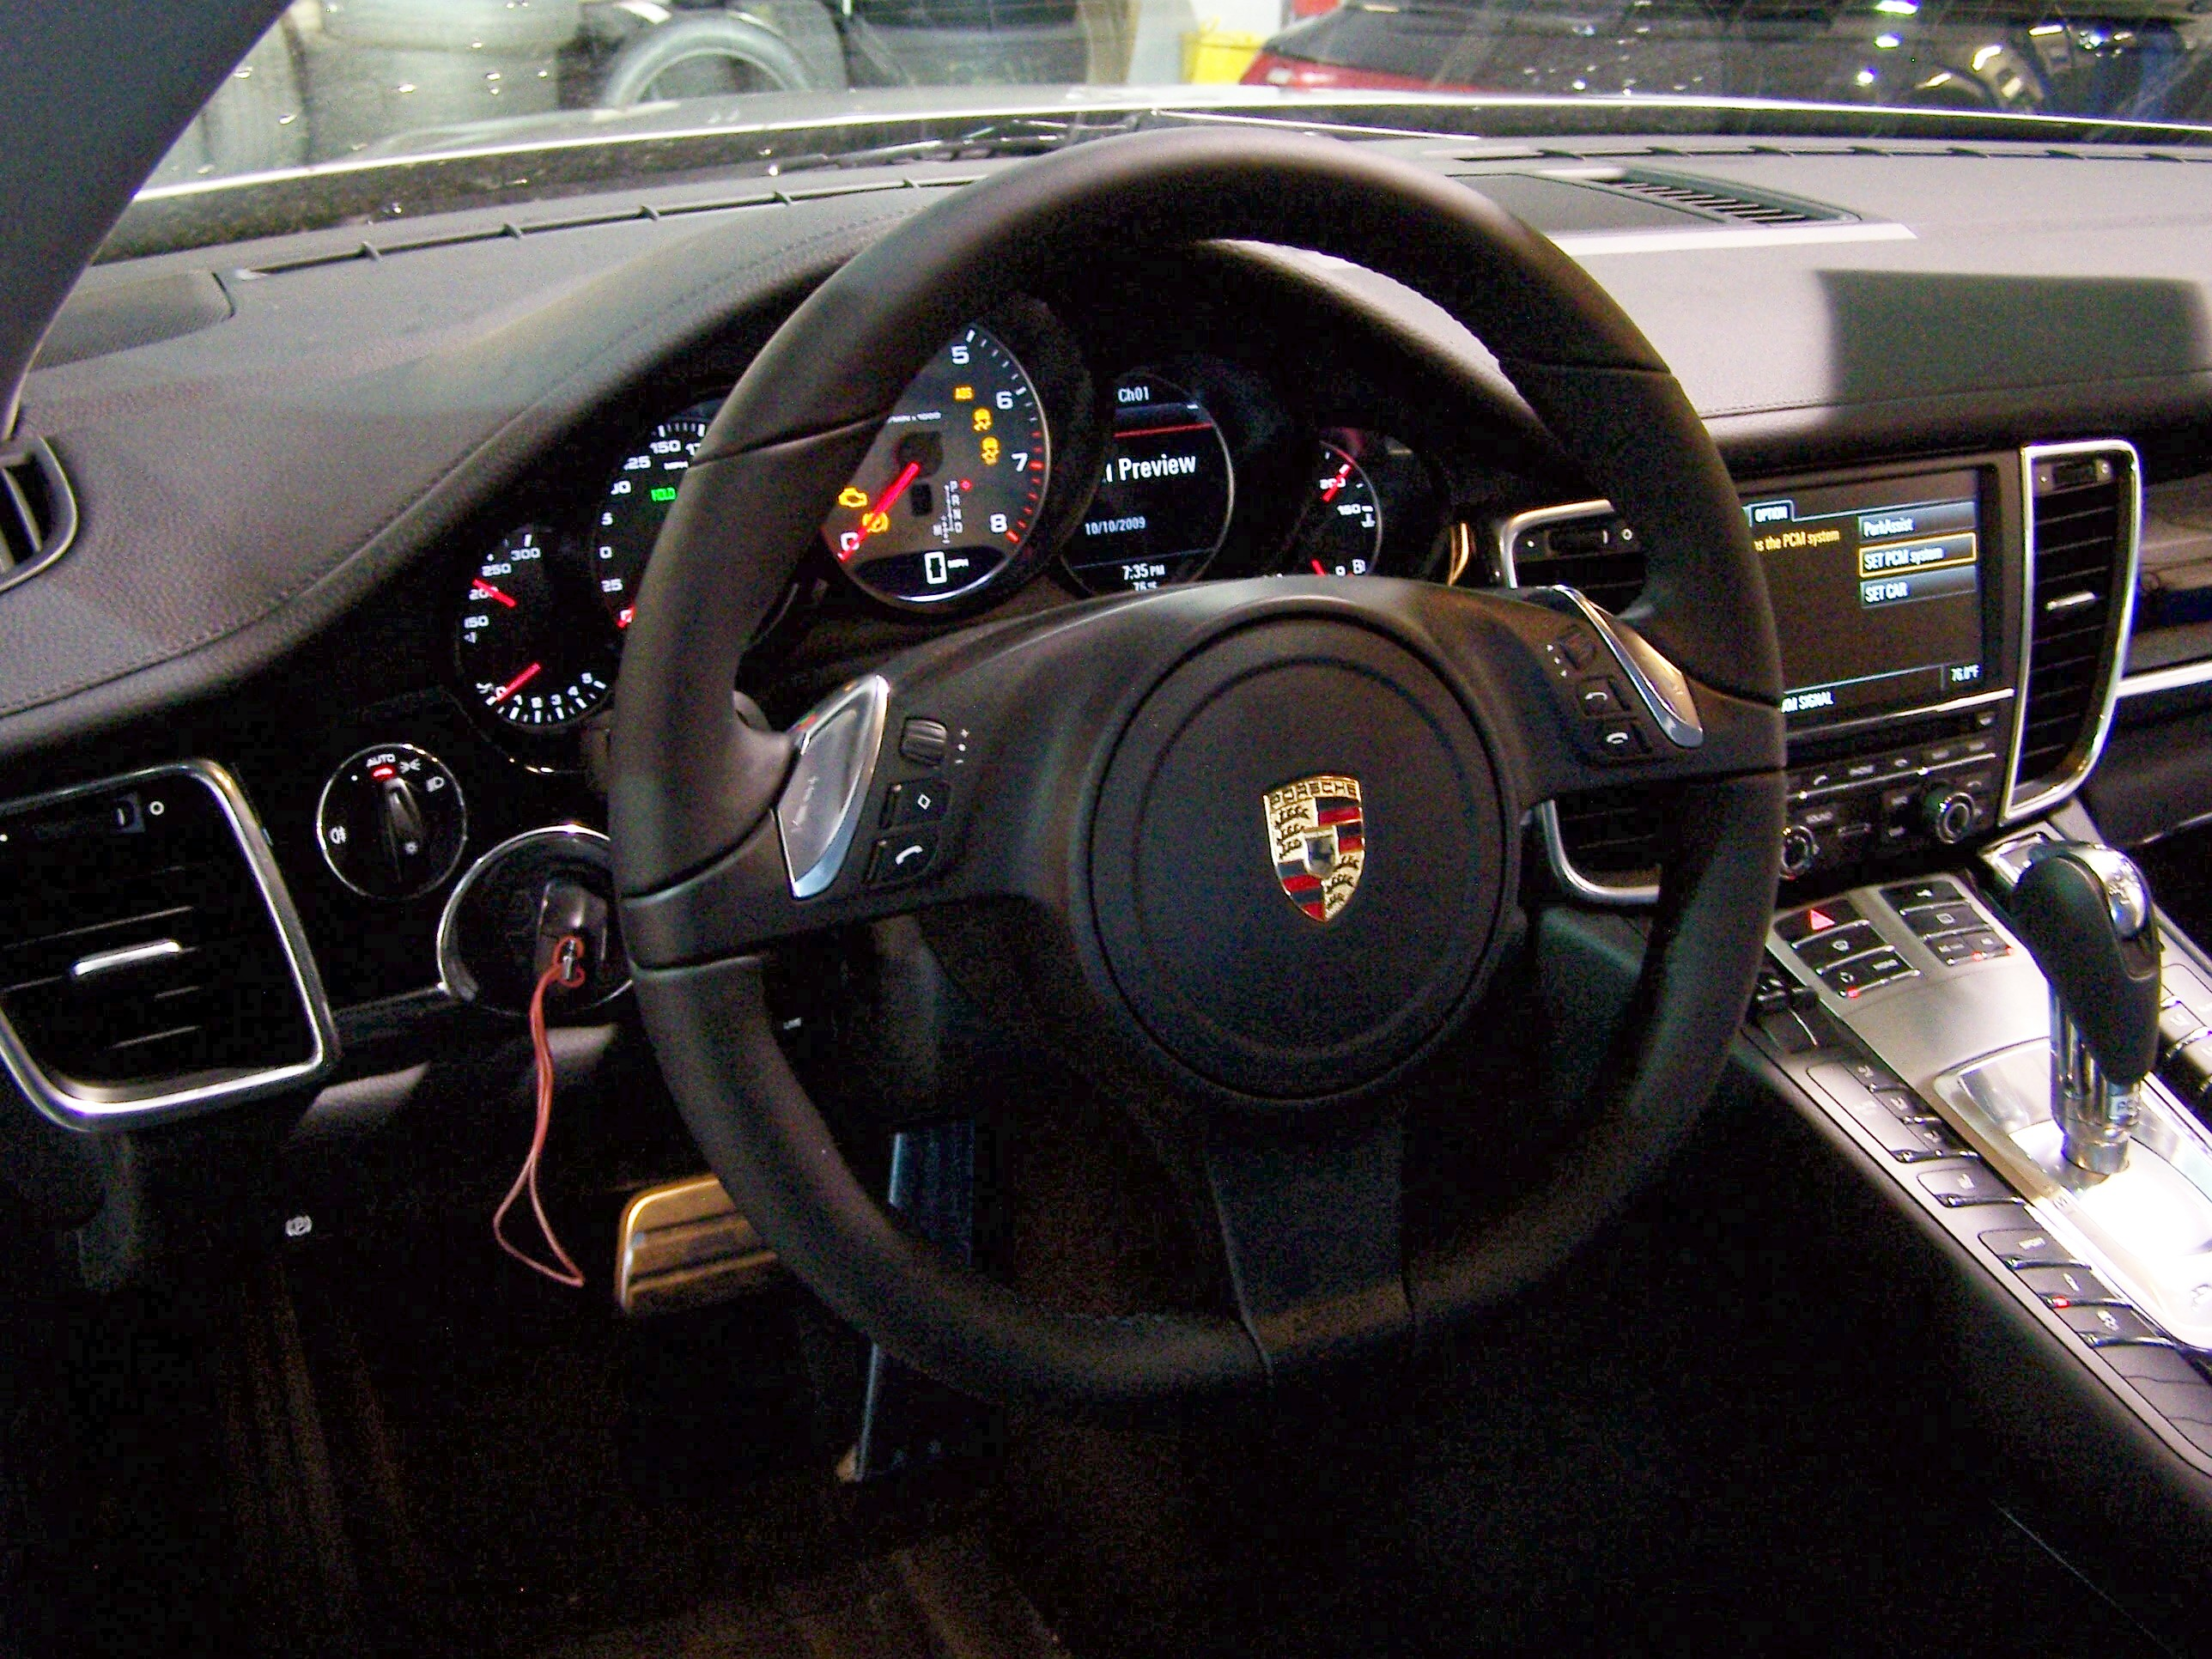 2010 Porsche Panamera S Interior Pictures At The Dealership